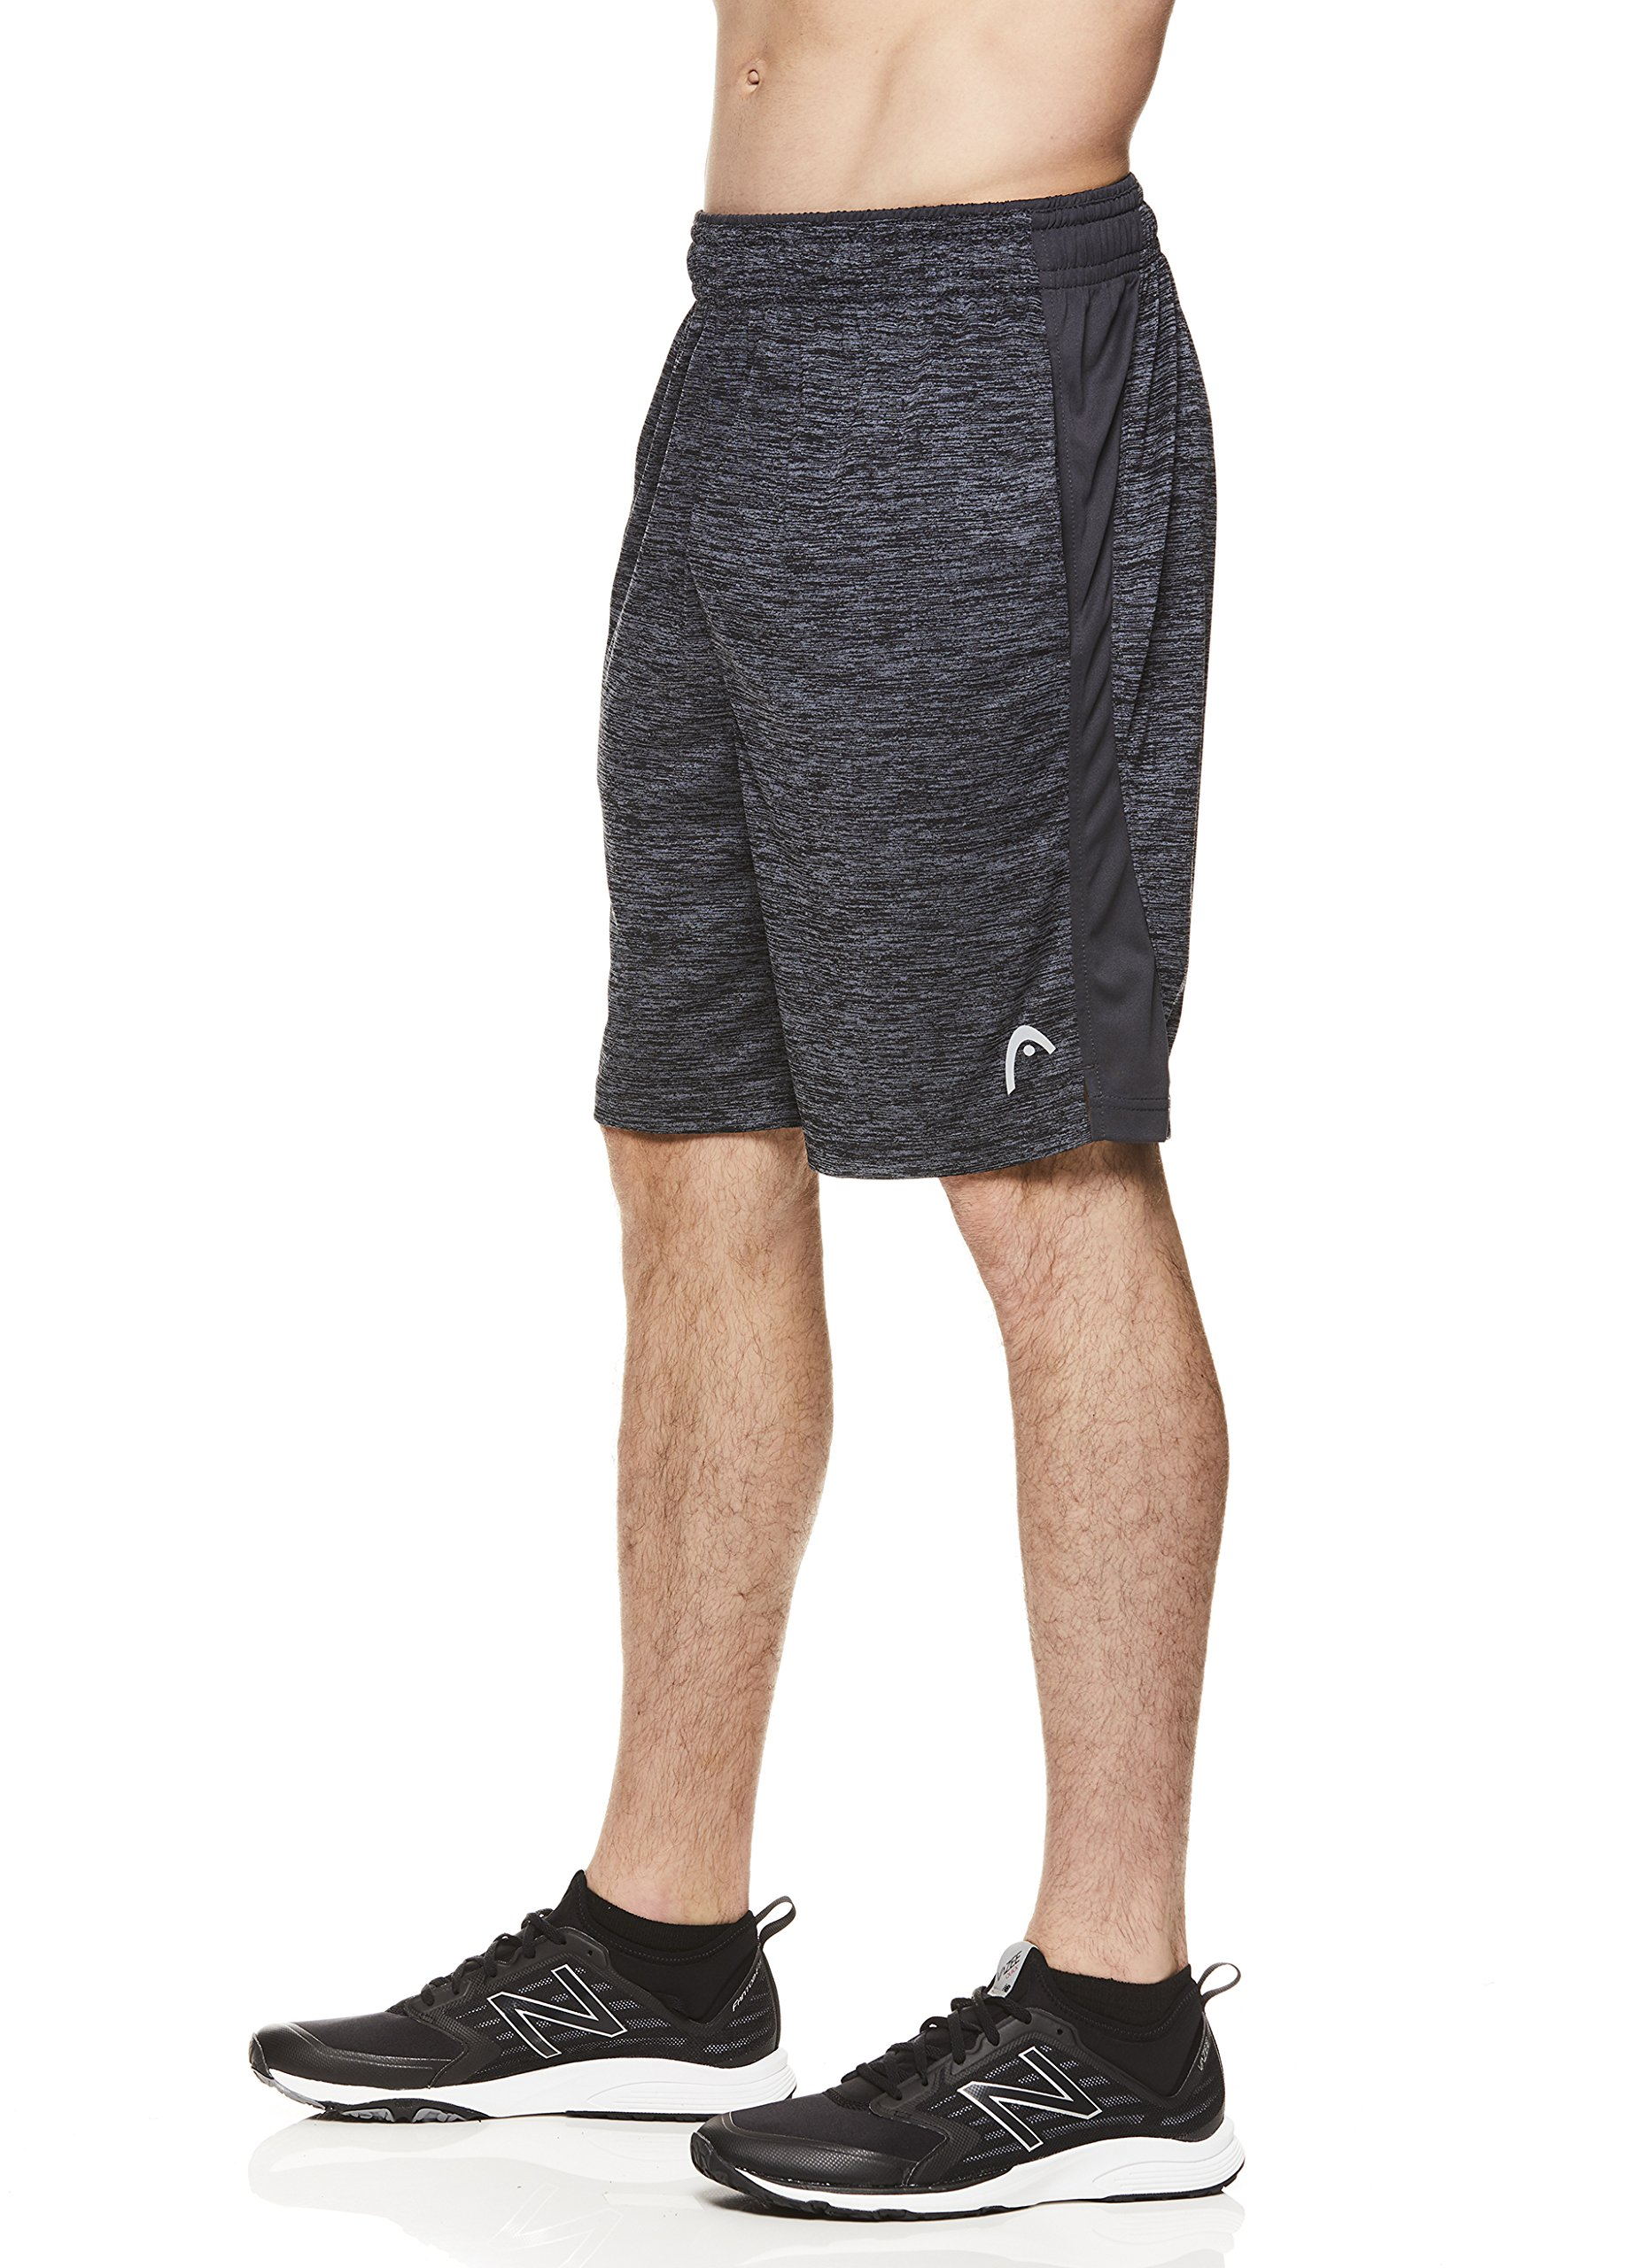 HEAD Men's Polyester Workout Gym & Running Shorts w/Elastic Waistband & Drawstring - Firestarter Ebony Heather Black, 2X